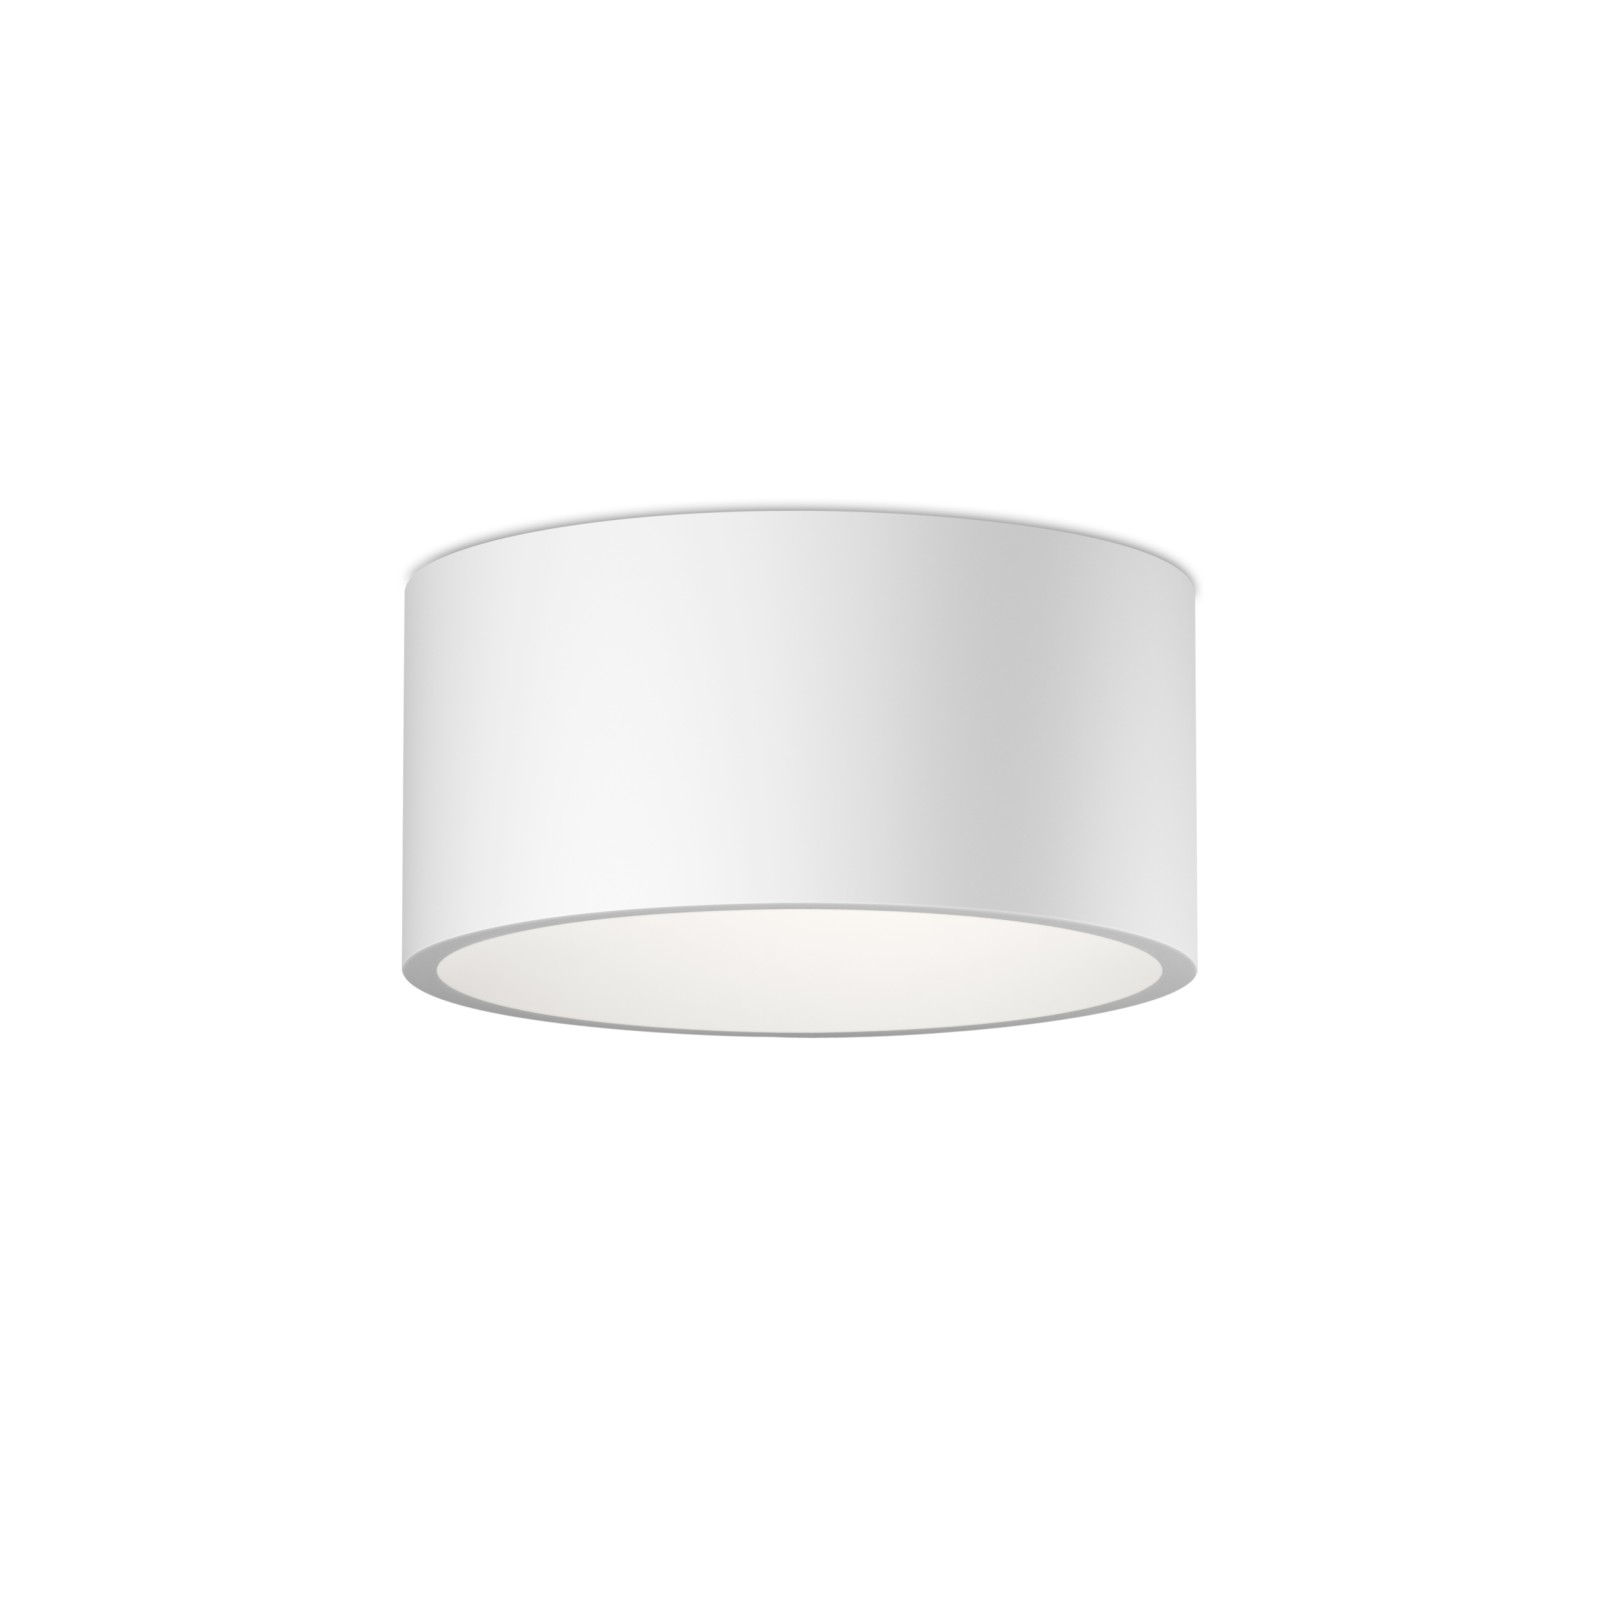 Domo 8200 Ceiling Light Yes